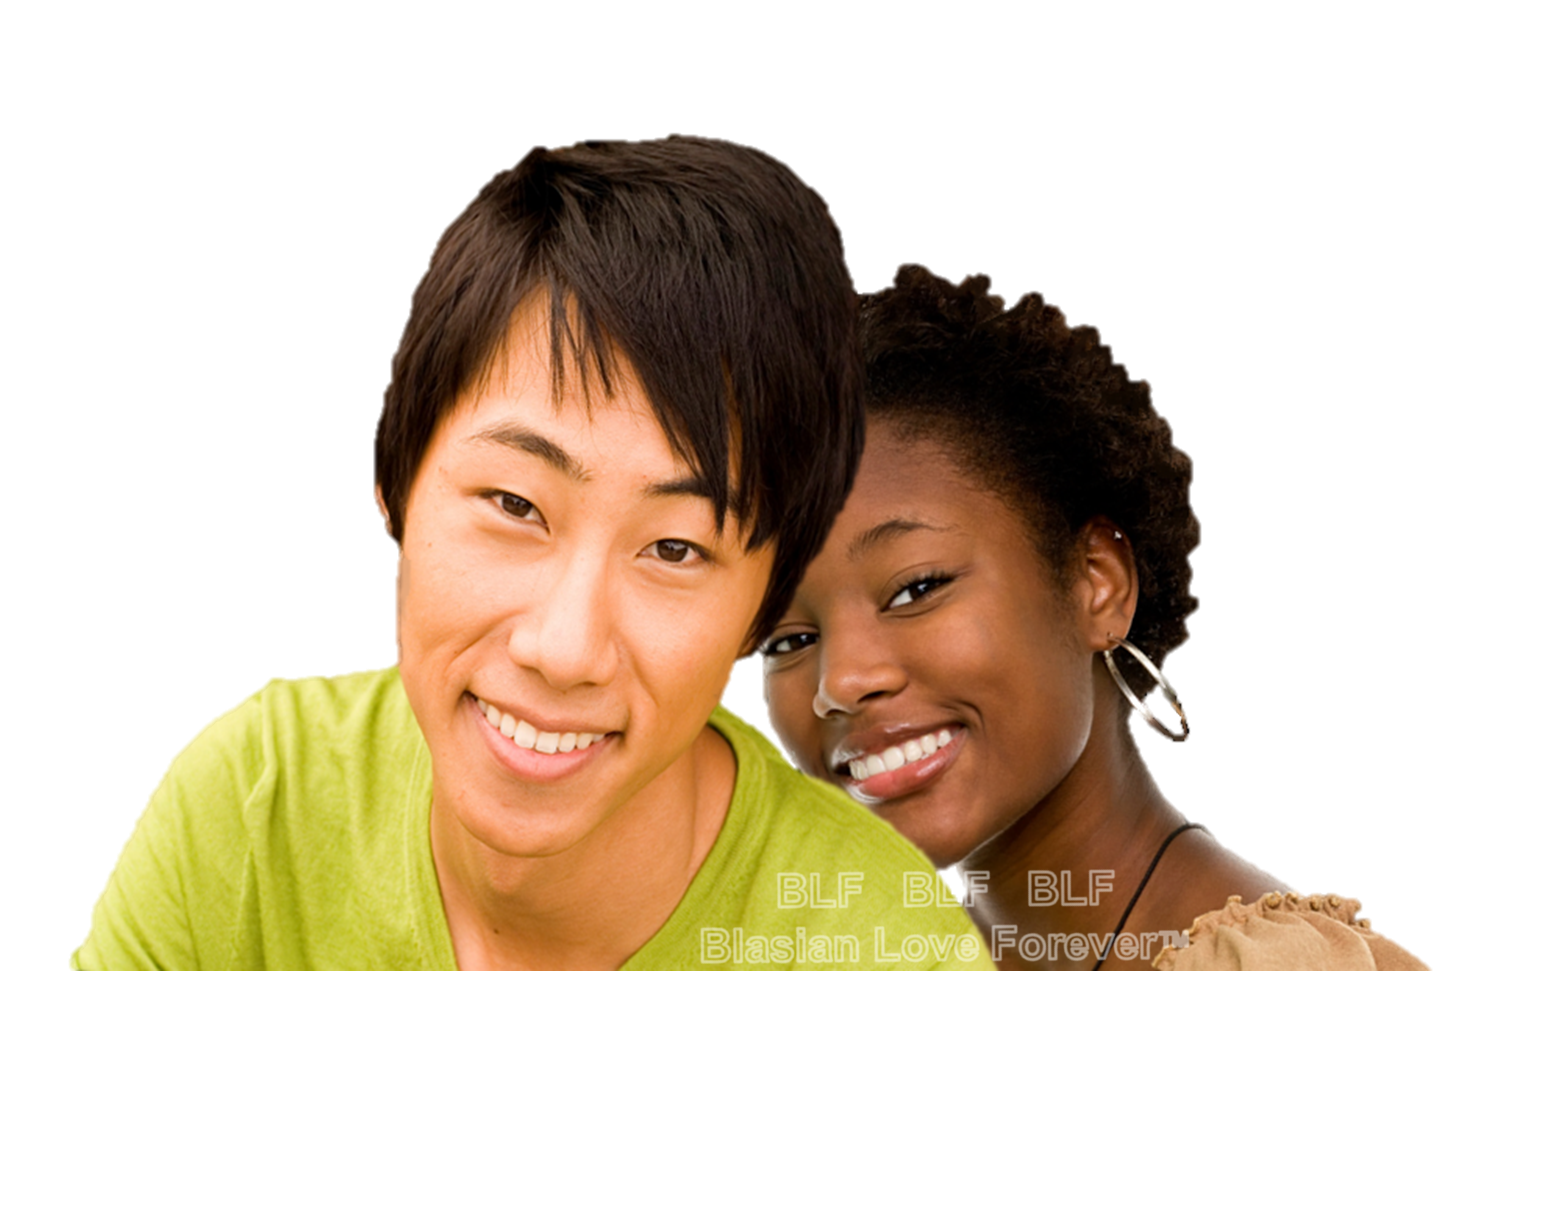 chicken black women dating site Looking to date black singles in the uk matchcom makes it easy to search for matches of black and african descent, it's free to register on our black dating page to set up your profile and browse profiles of local black singles sharing a similar culture and heritage than yours.